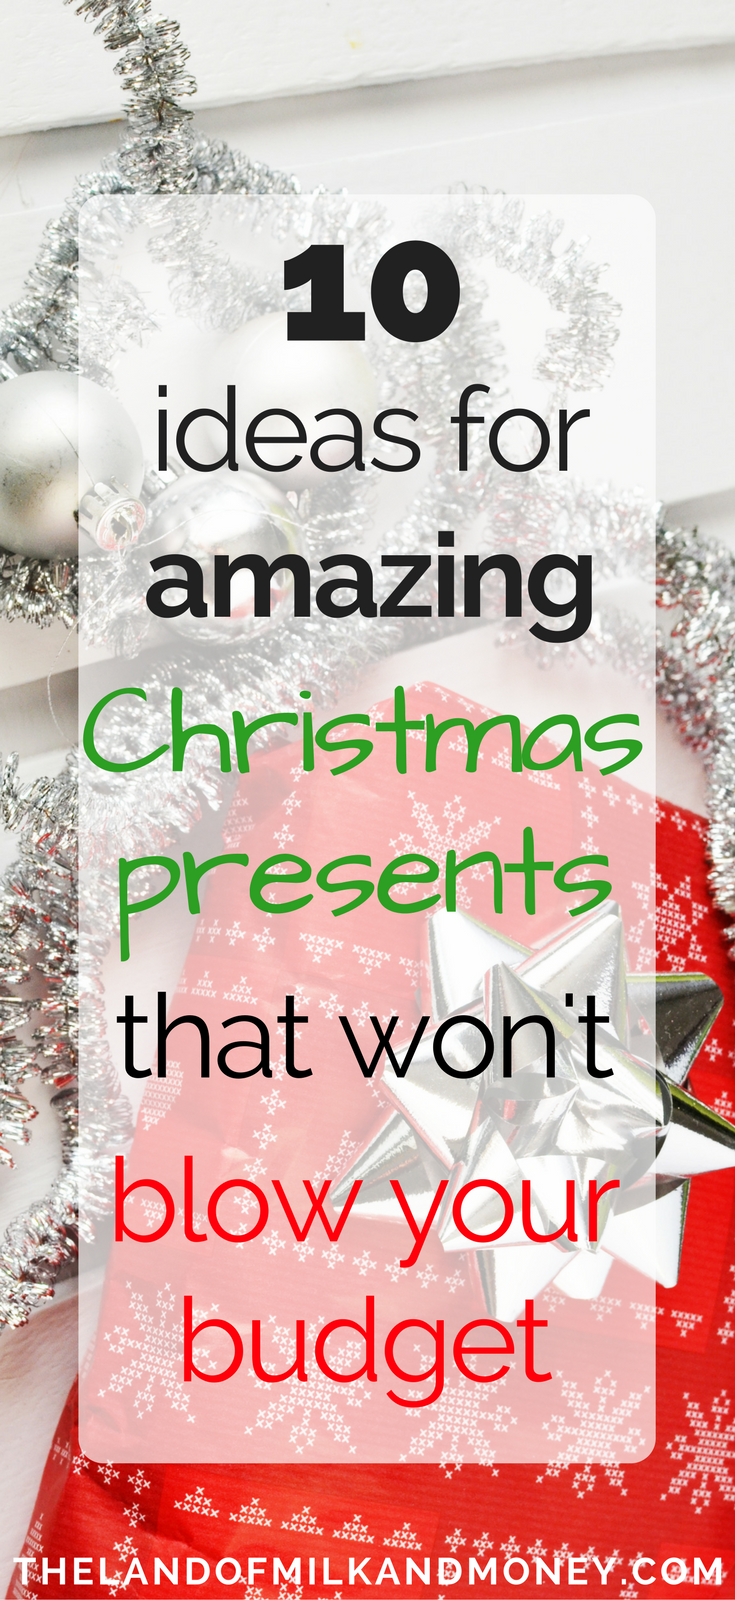 10 Hacks for Amazing Christmas Gift Ideas On A Budget | Holidays ...